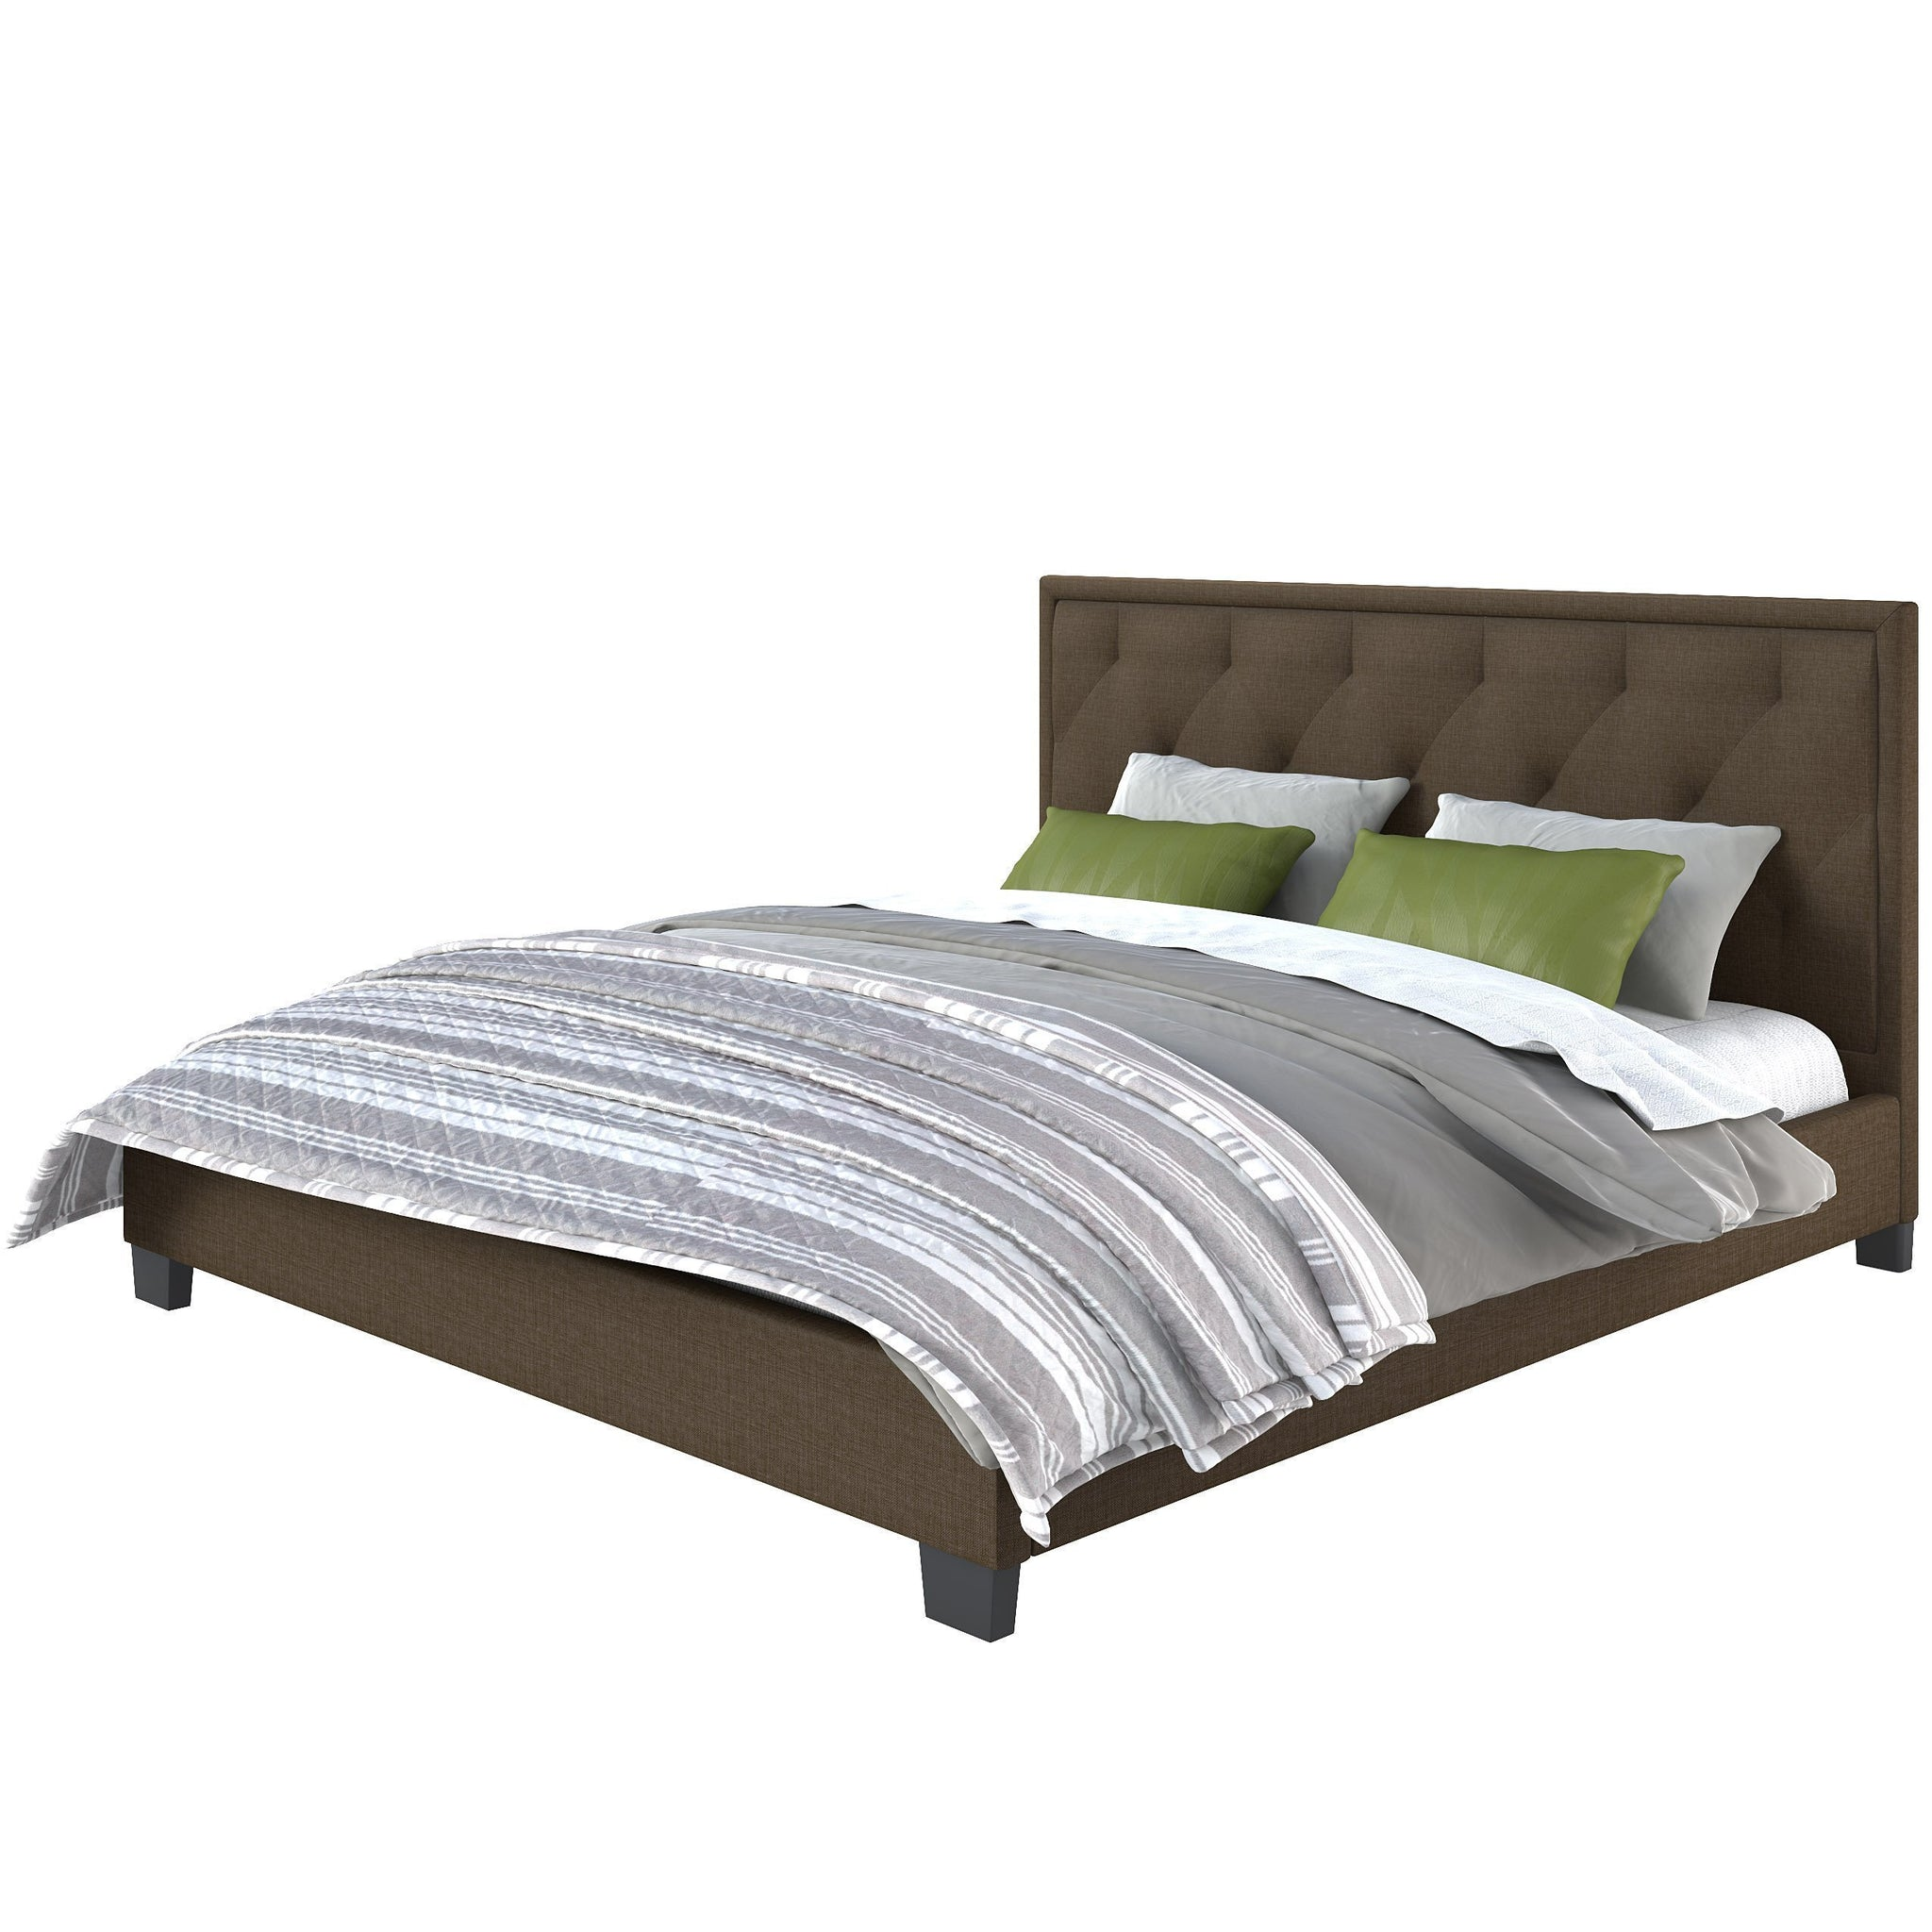 Fairfield Diamond Tufted Upholstered King Bed Clearance Final Sale Corliving Furniture Us